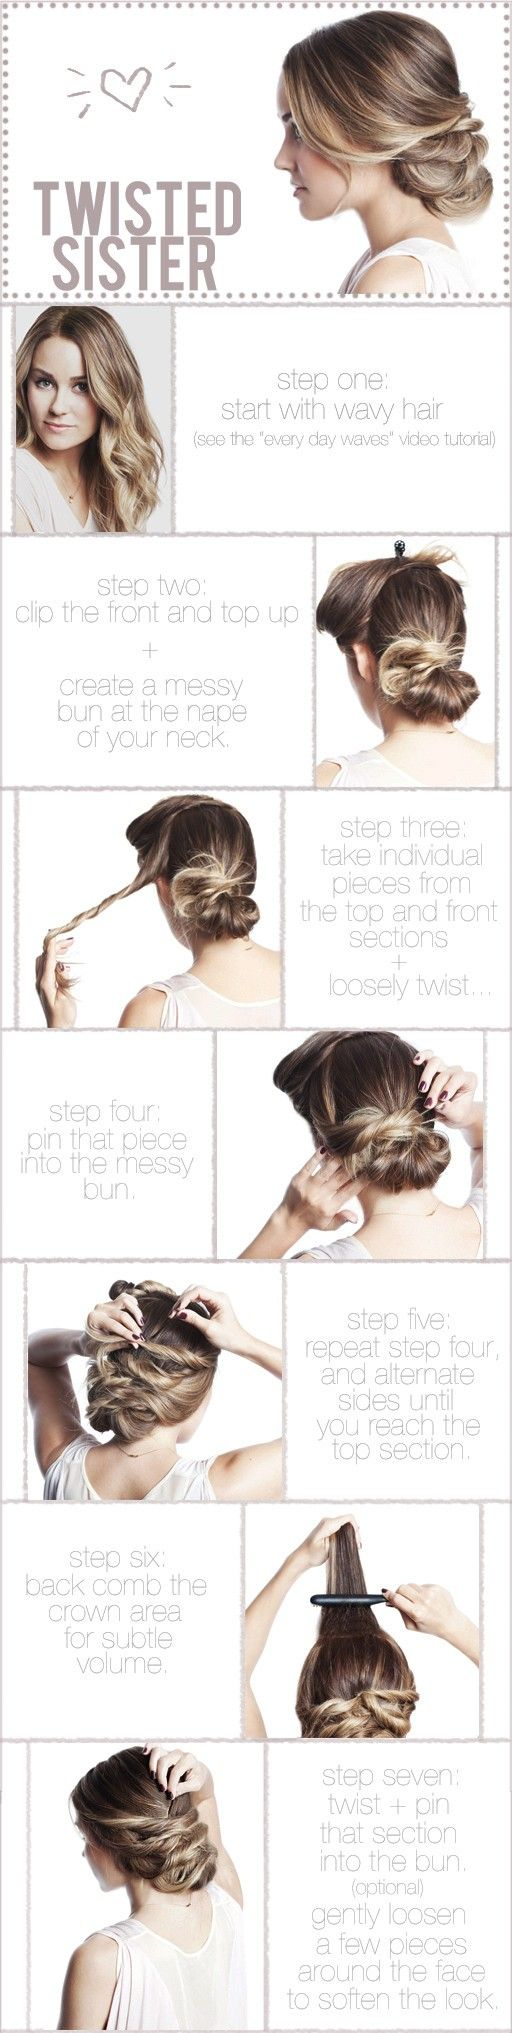 Hair.: Hair Ideas, Make Up, Hairstyles, Messy Bun, Hair Styles, Hairdos, Makeup, Updos, Twisted Sister